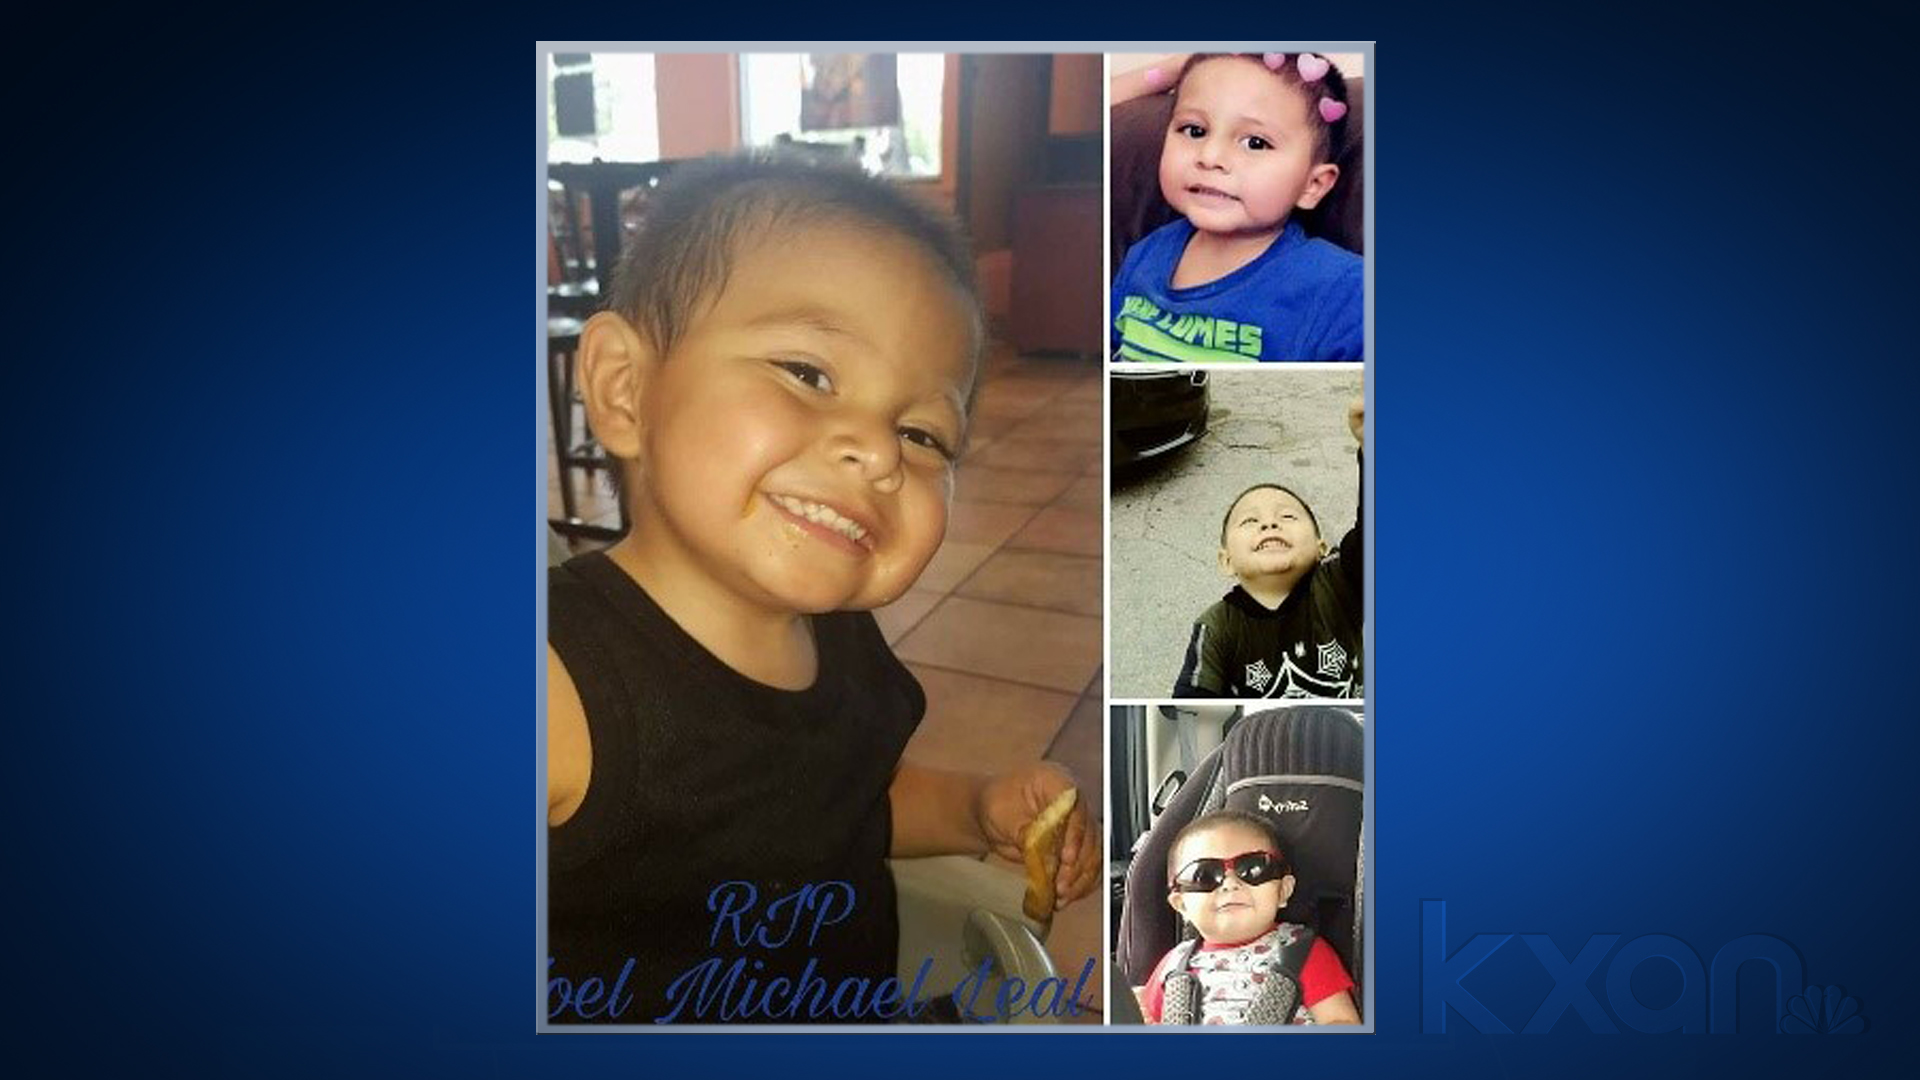 Noel Leal - 2-year-old killed-846655081